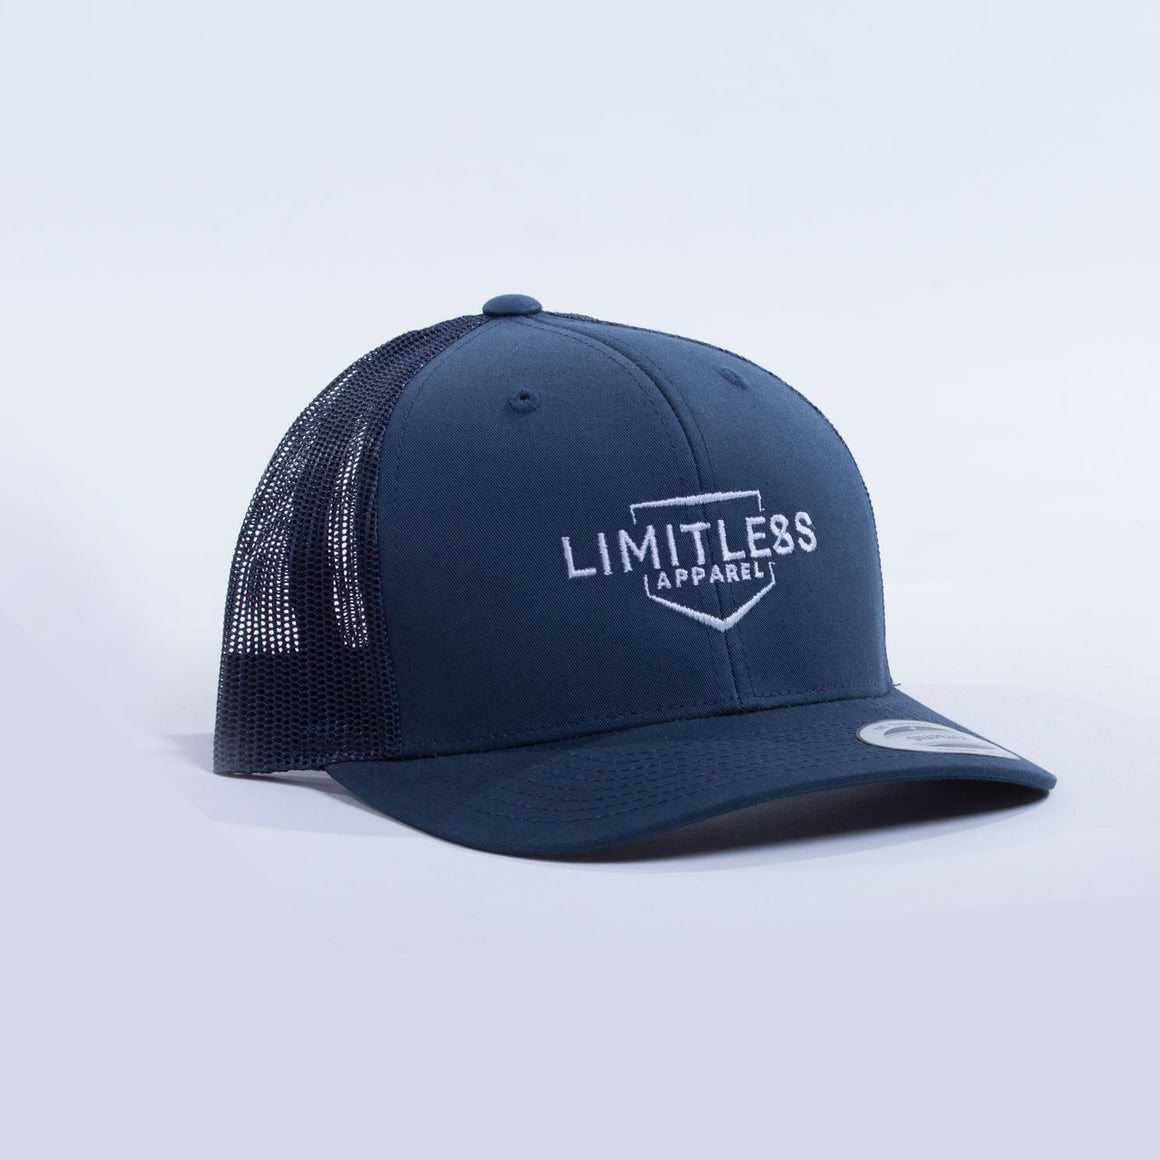 Retro trucker cap navy